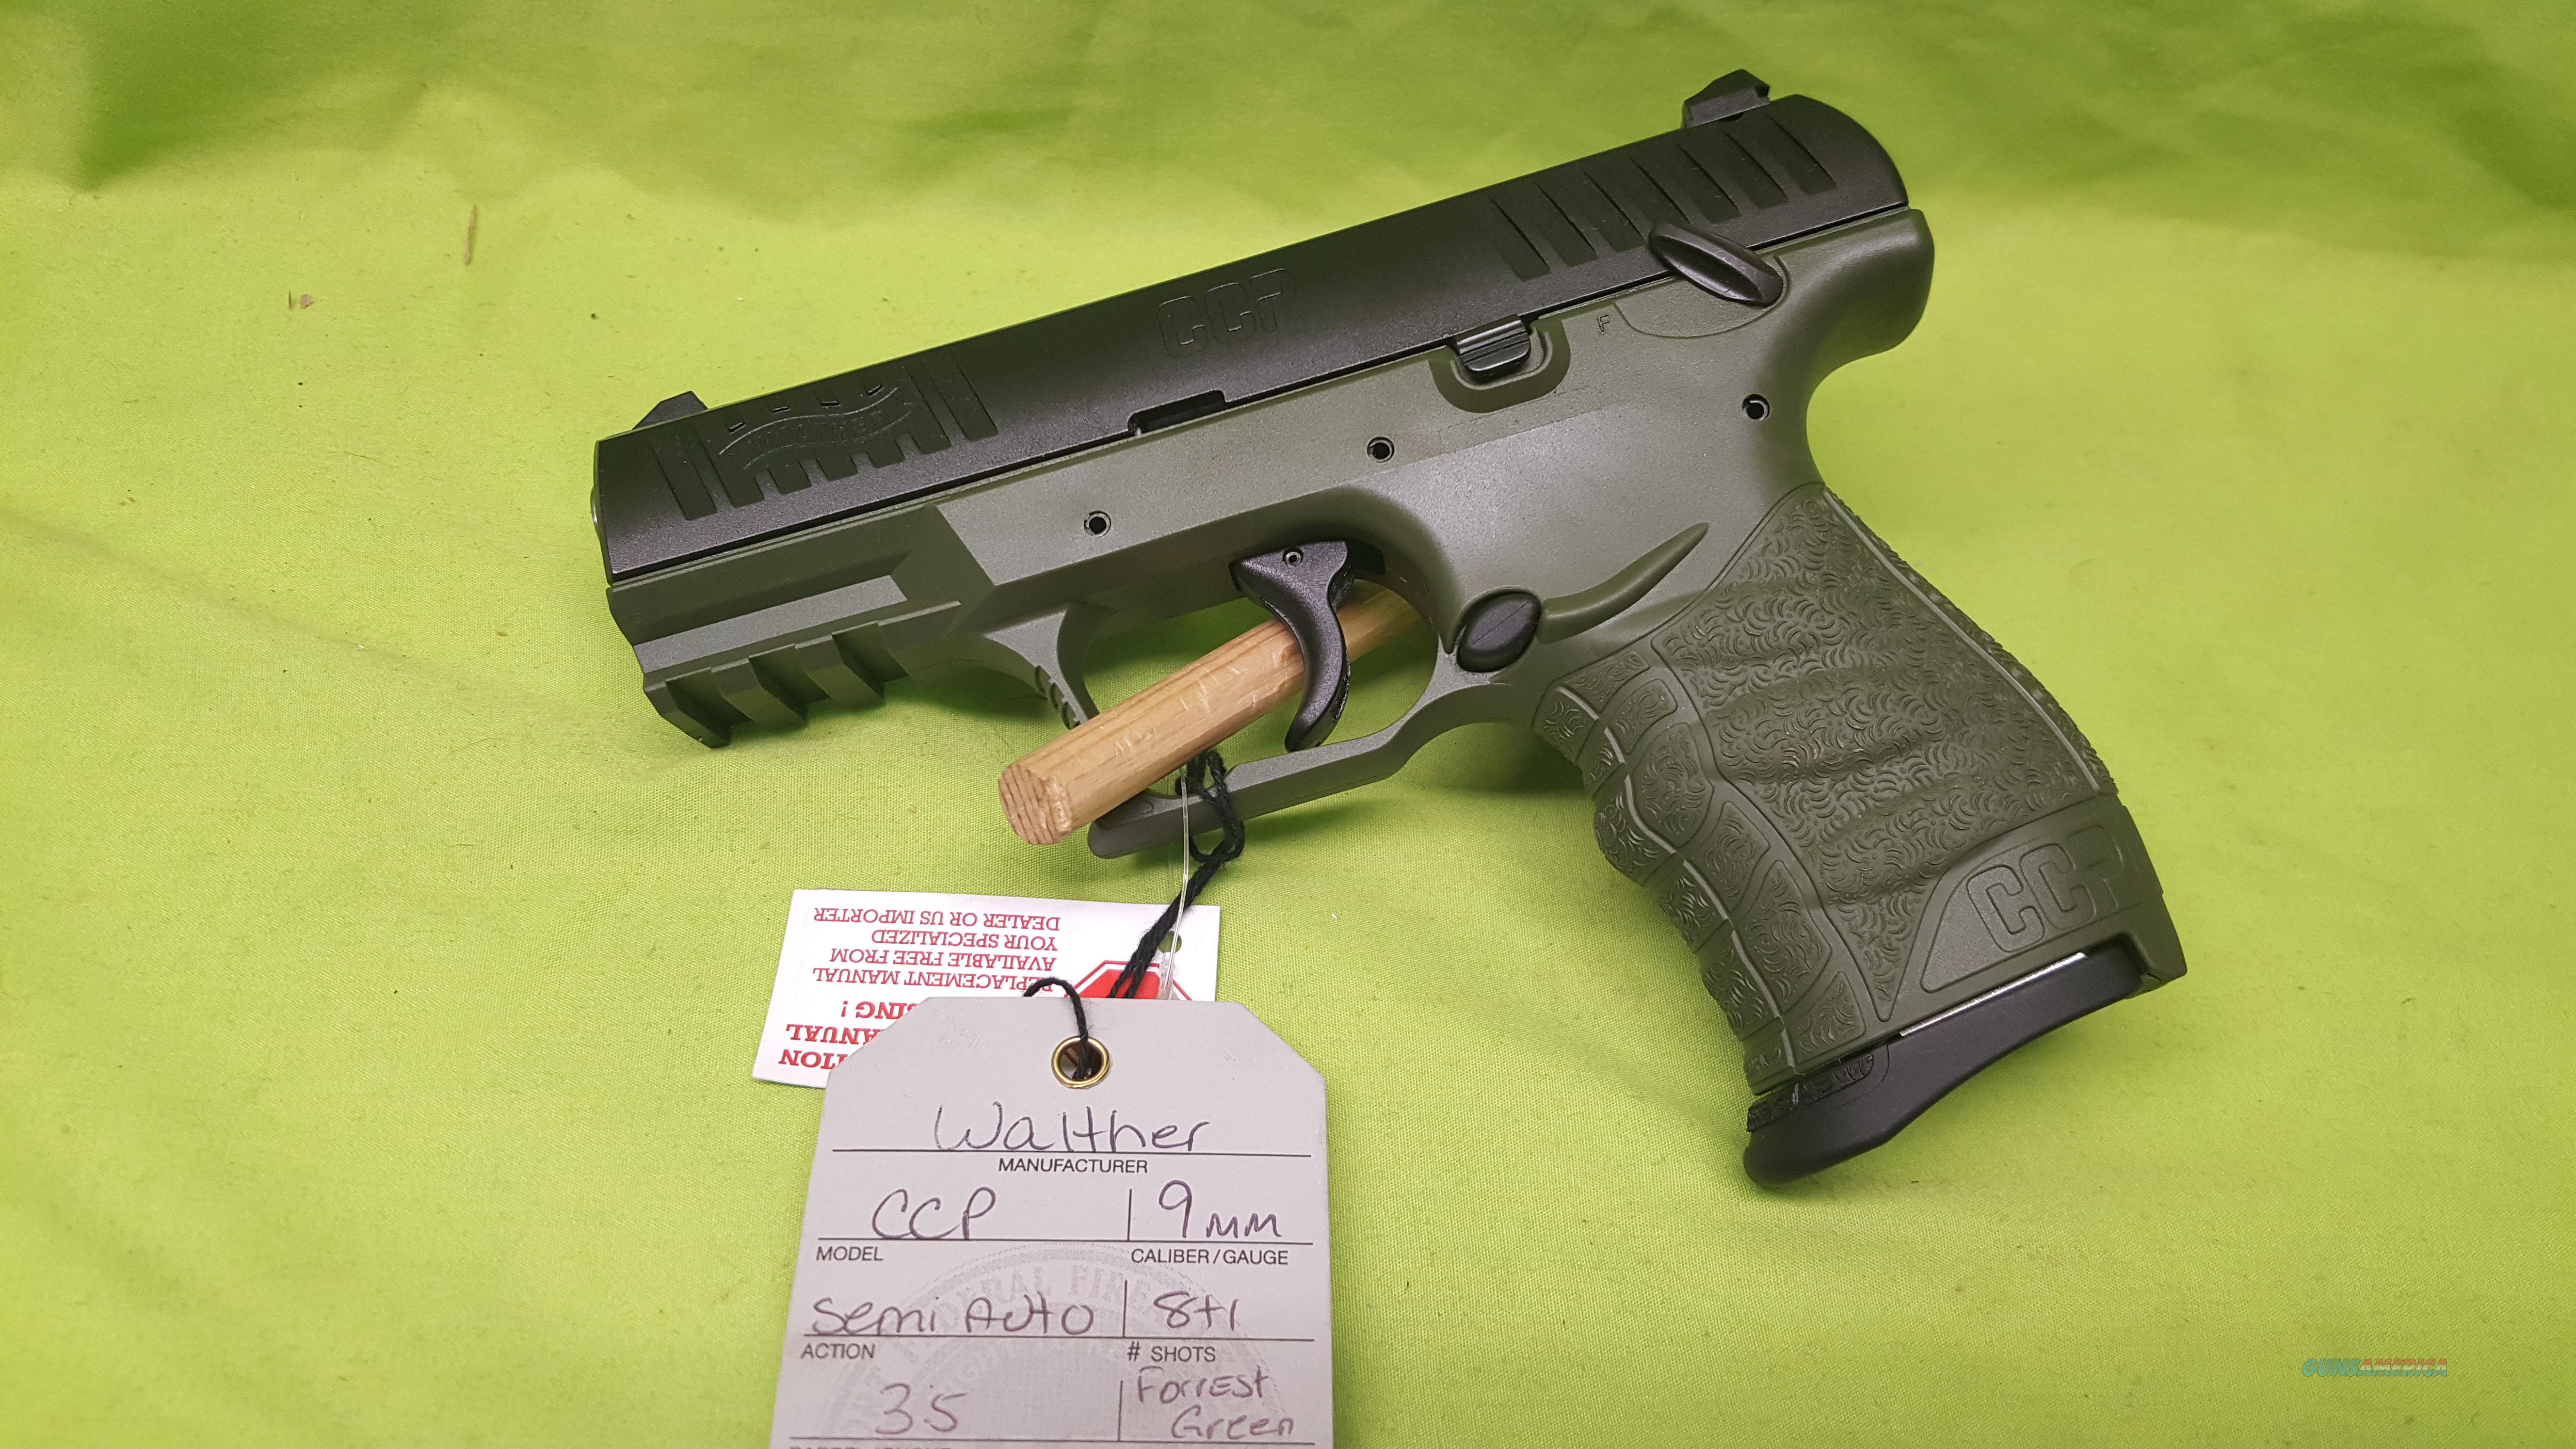 WALTHER CCP 9MM 9 MM 8RD FORREST GREEN 5080311  Guns > Pistols > Walther Pistols > Post WWII > PPS